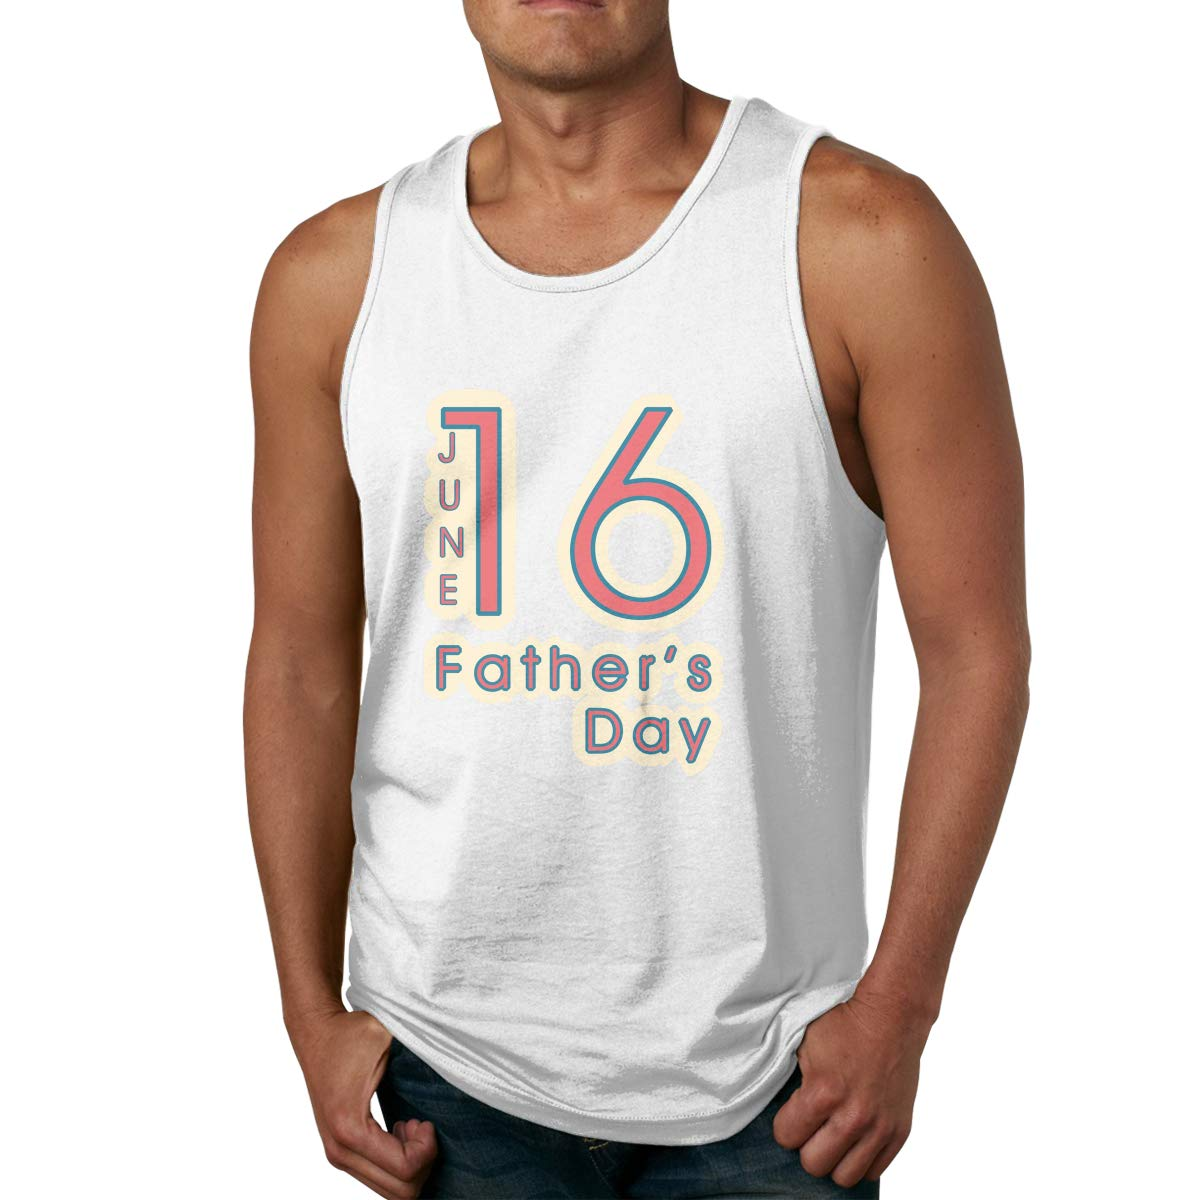 Man Cotton Pure Color O-Neck June 16 Fathers Day Sports Tanks